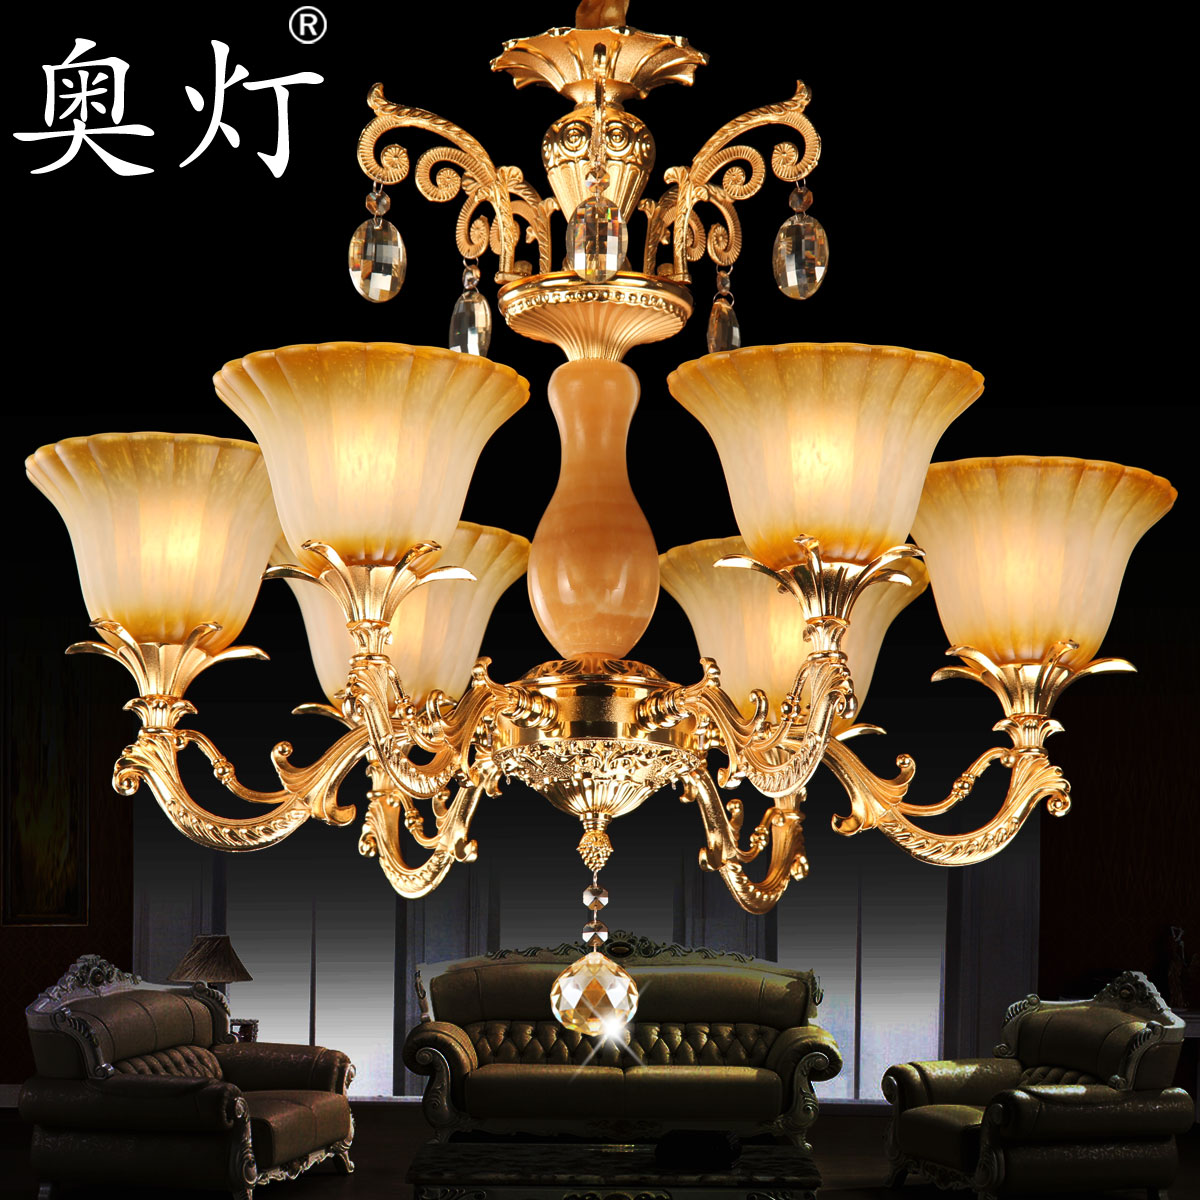 Austrian lamp zinc alloy european crystal chandelier modern minimalist villa living room dining room bedroom book droplight 1995